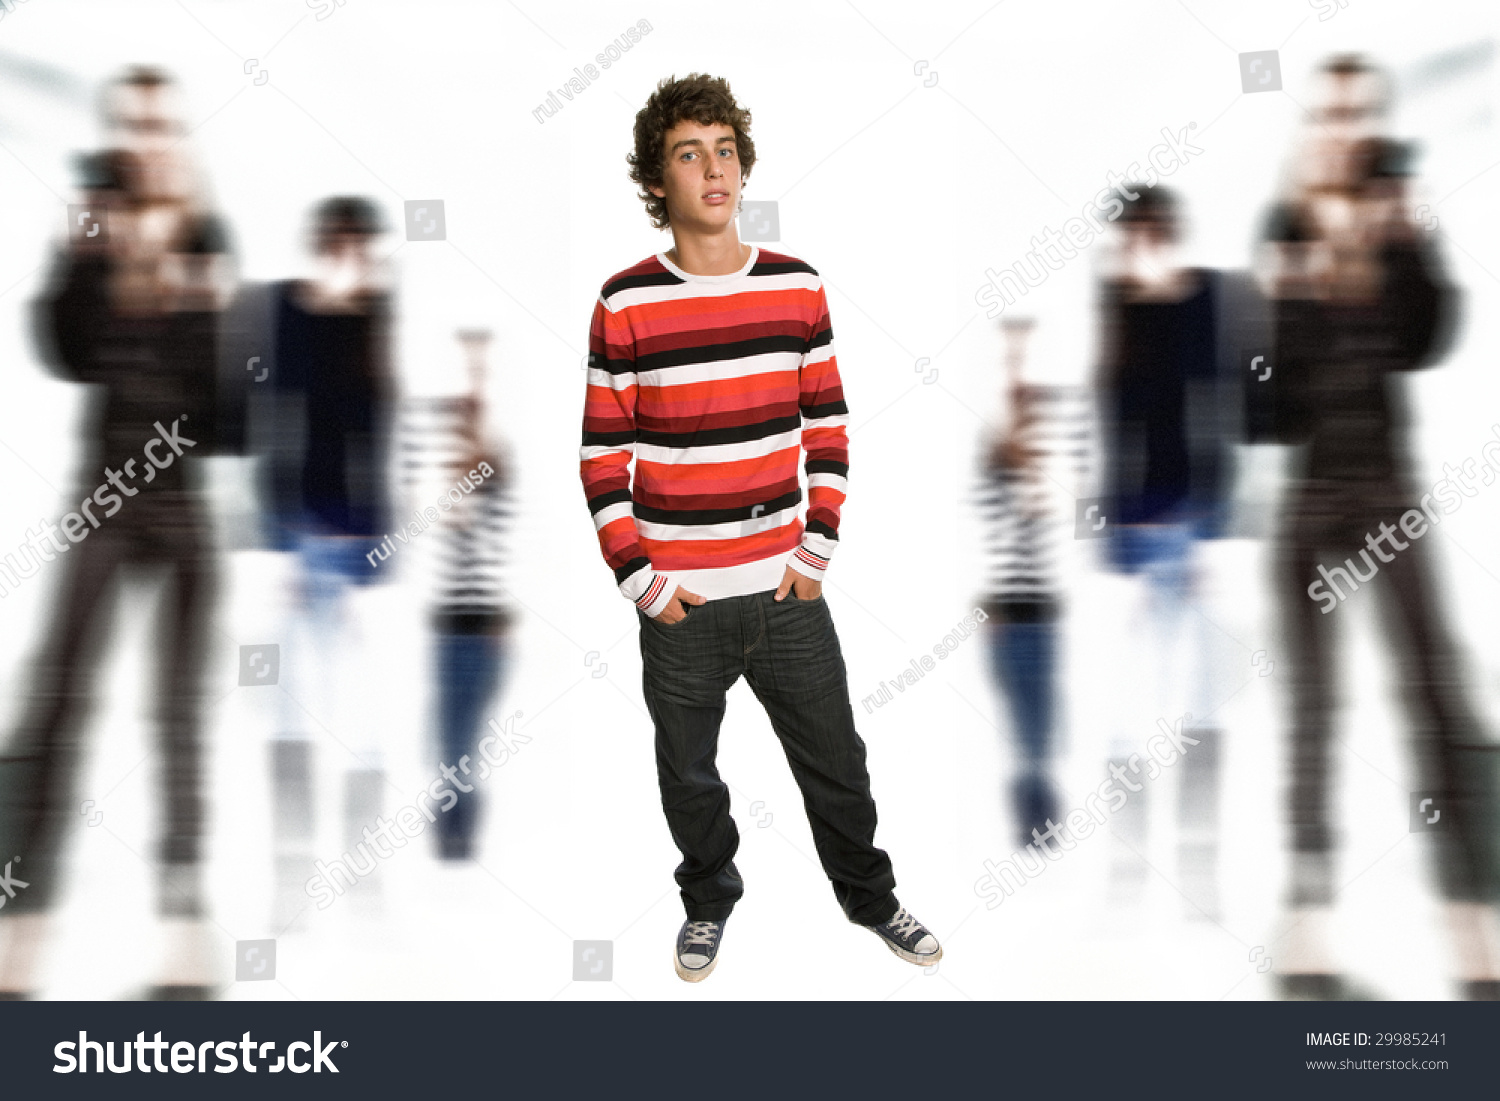 young casual boy full body among some out of focus people stock photo 29985241 shutterstock. Black Bedroom Furniture Sets. Home Design Ideas